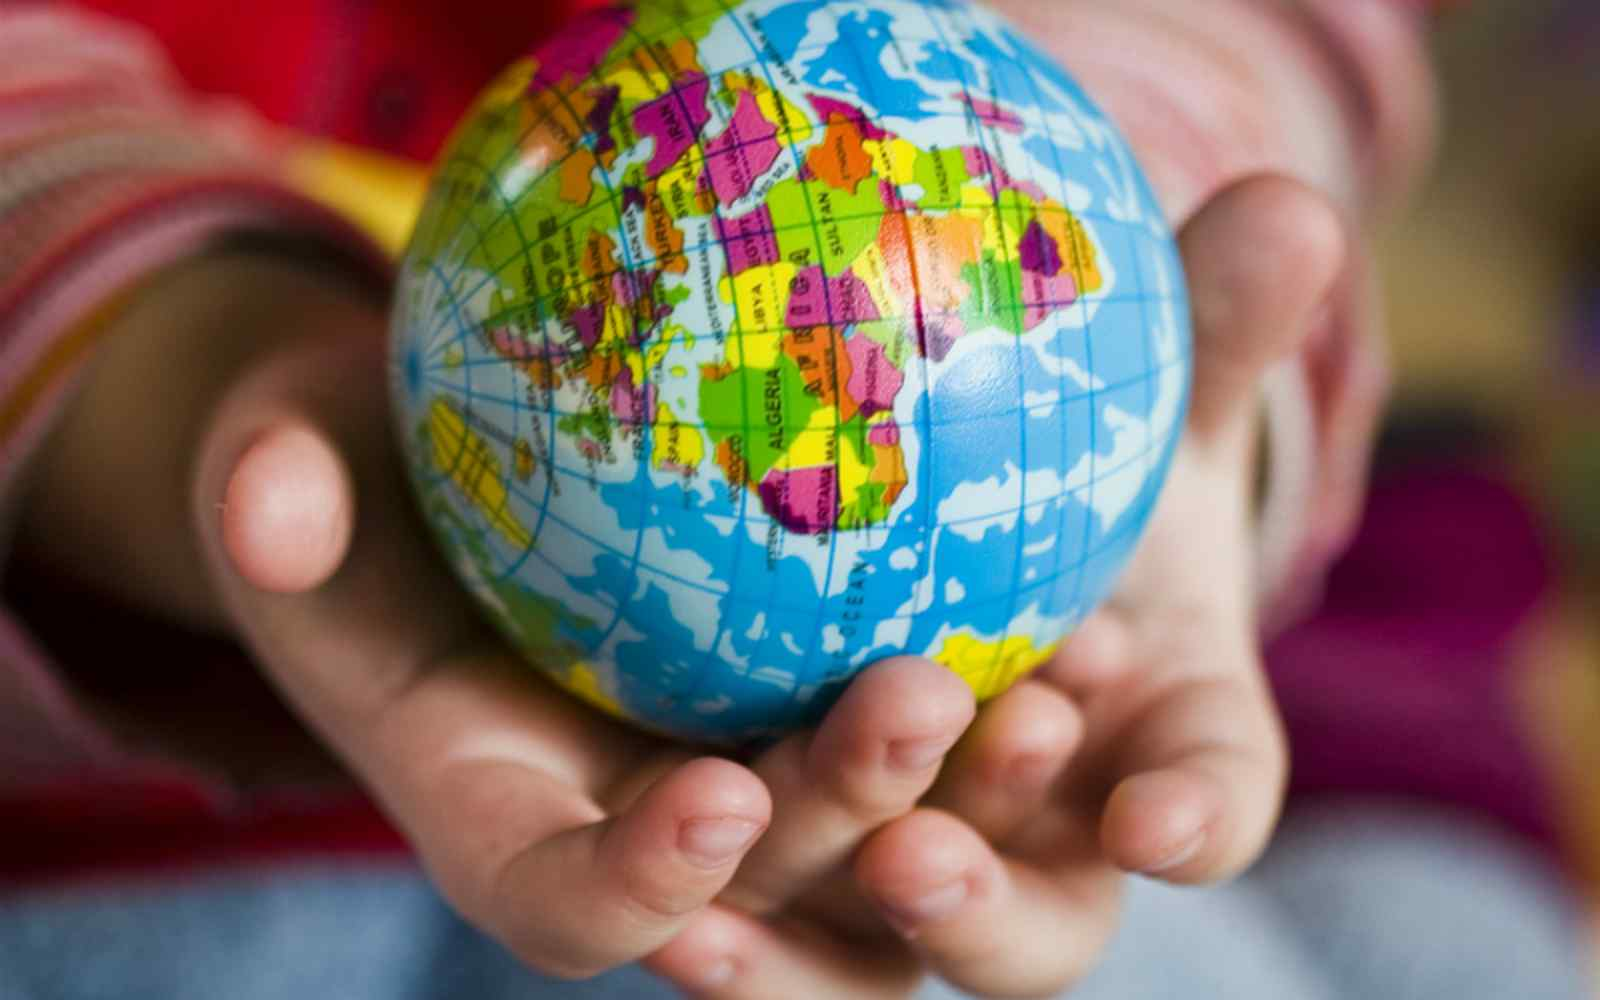 A child holding a globe in their hands